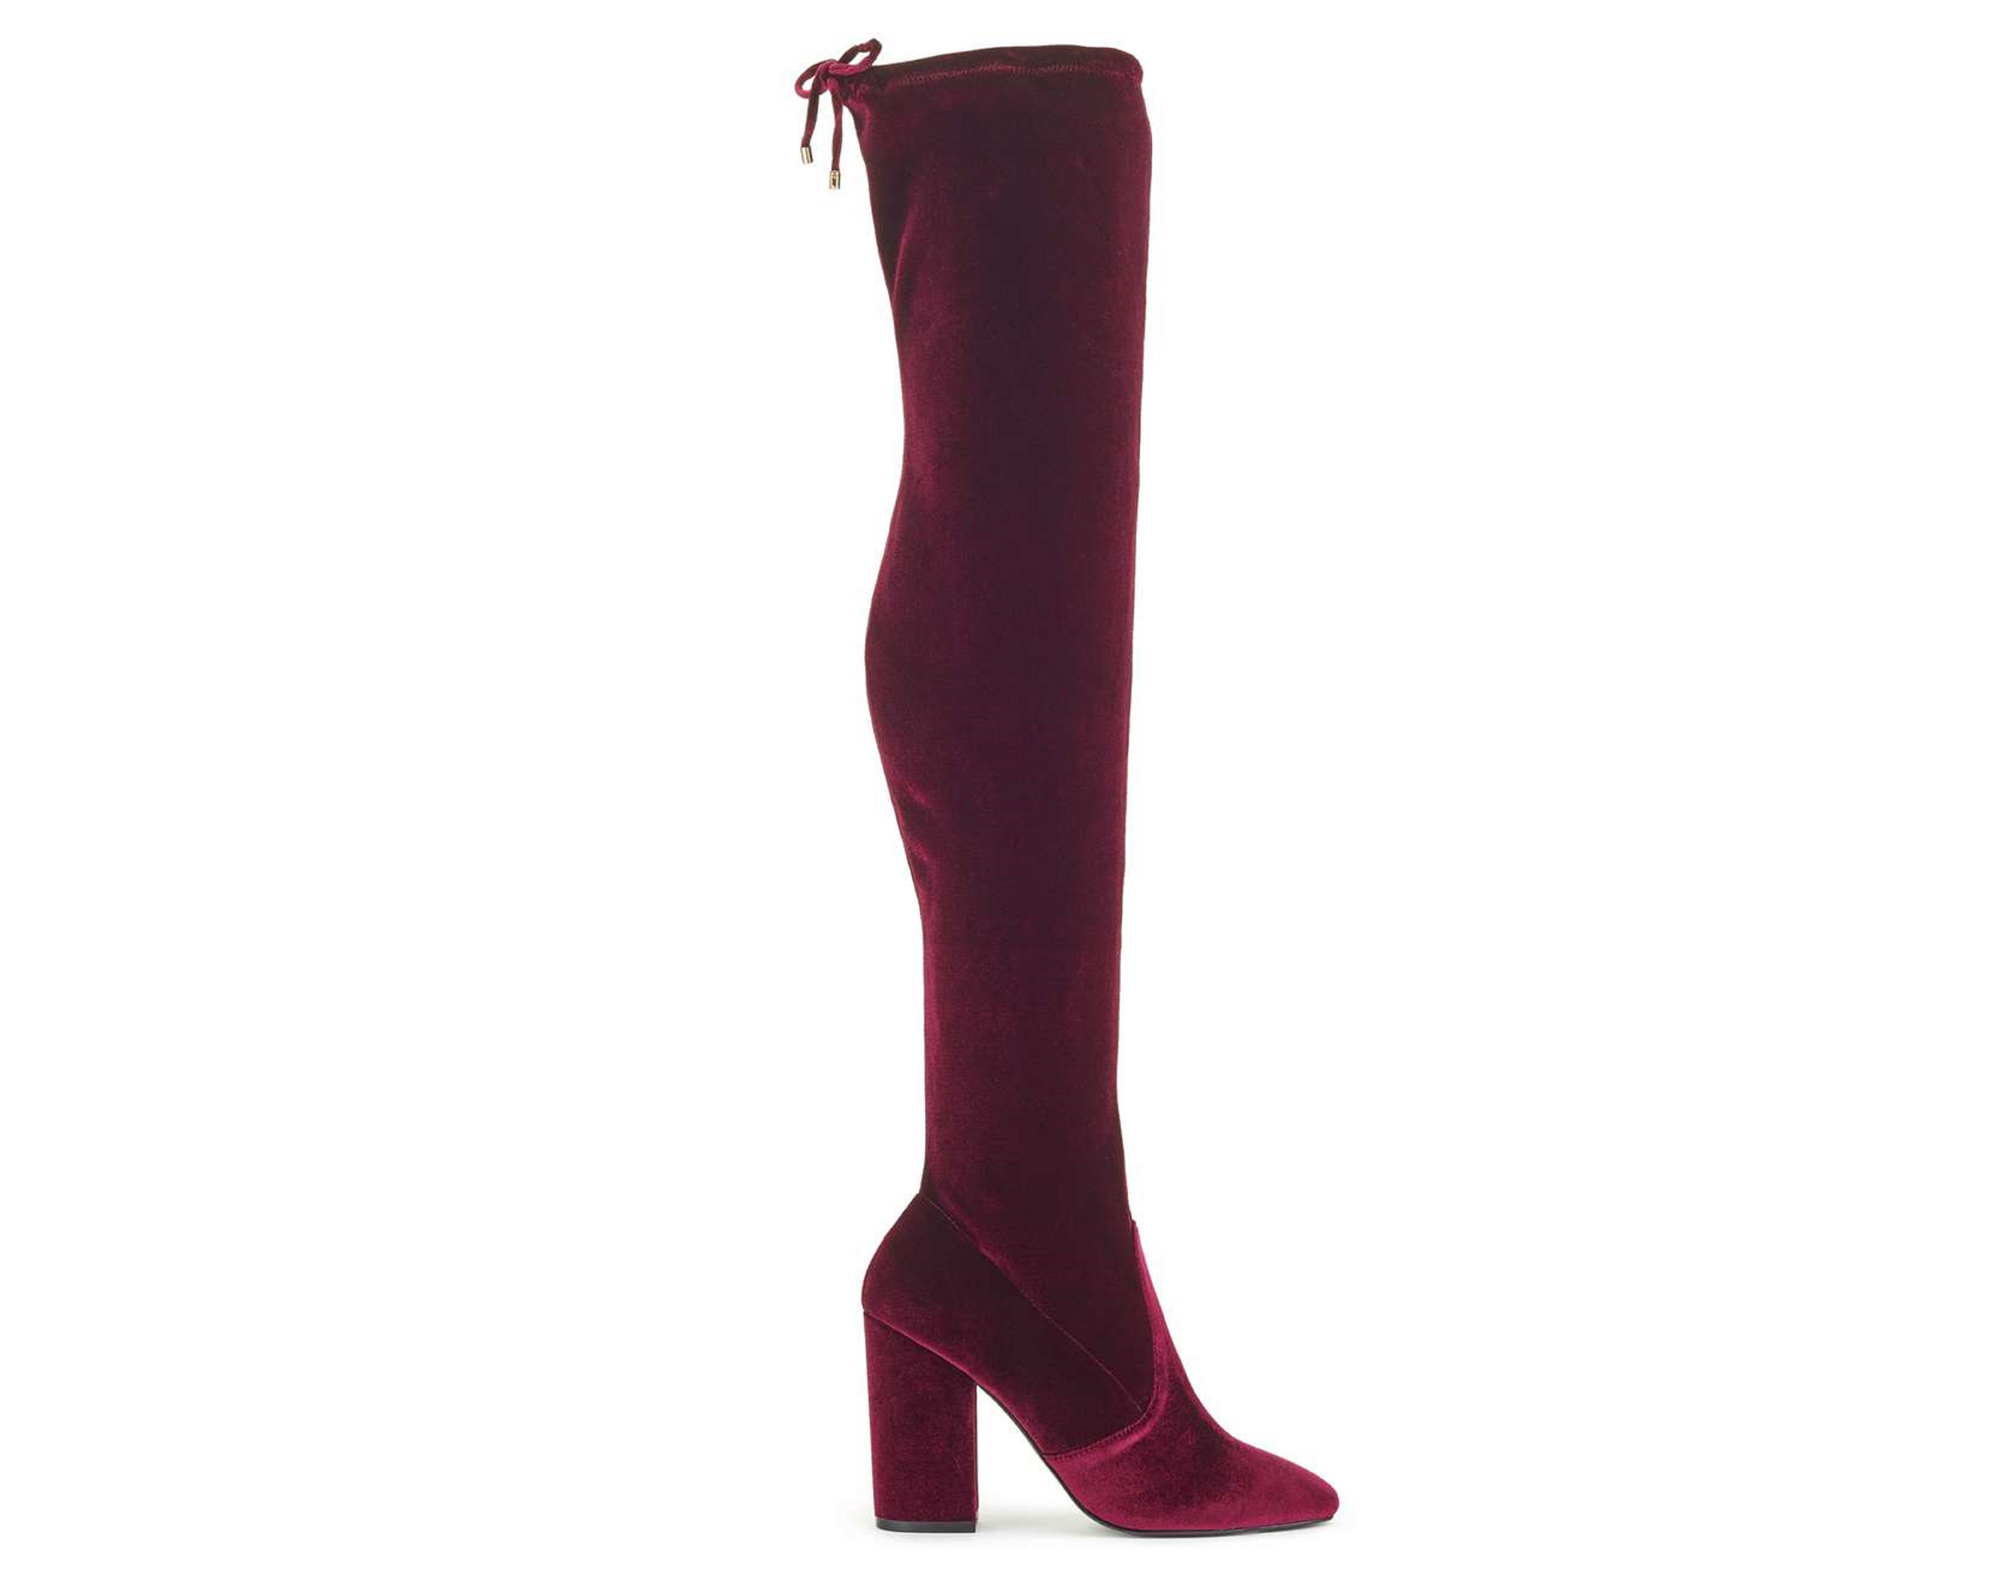 Miss Selfridge Koko Velvet Burgundy Boots